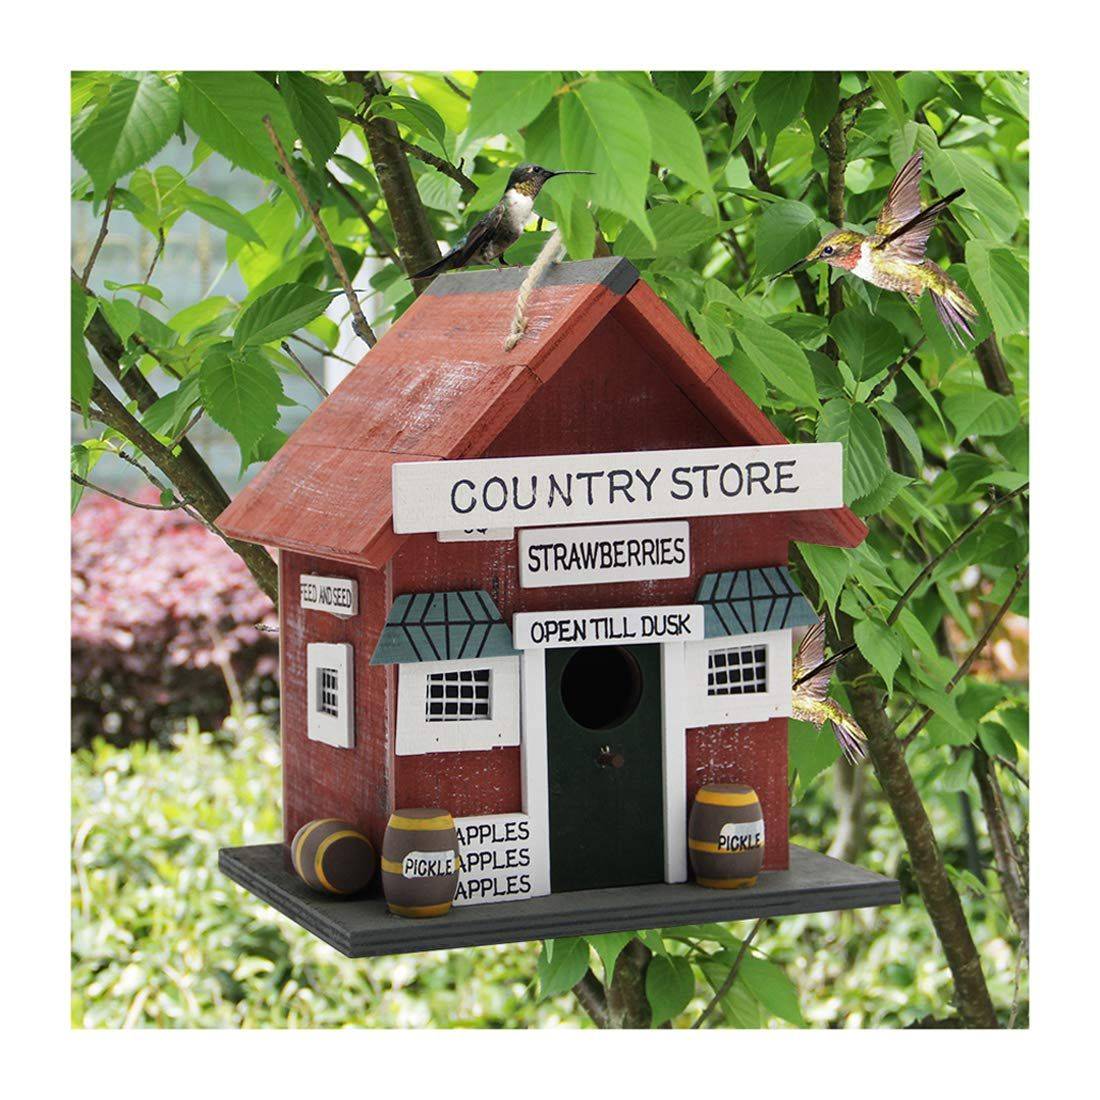 This Adorable Country Store Birdhouse Is Available on Amazon for Only $16